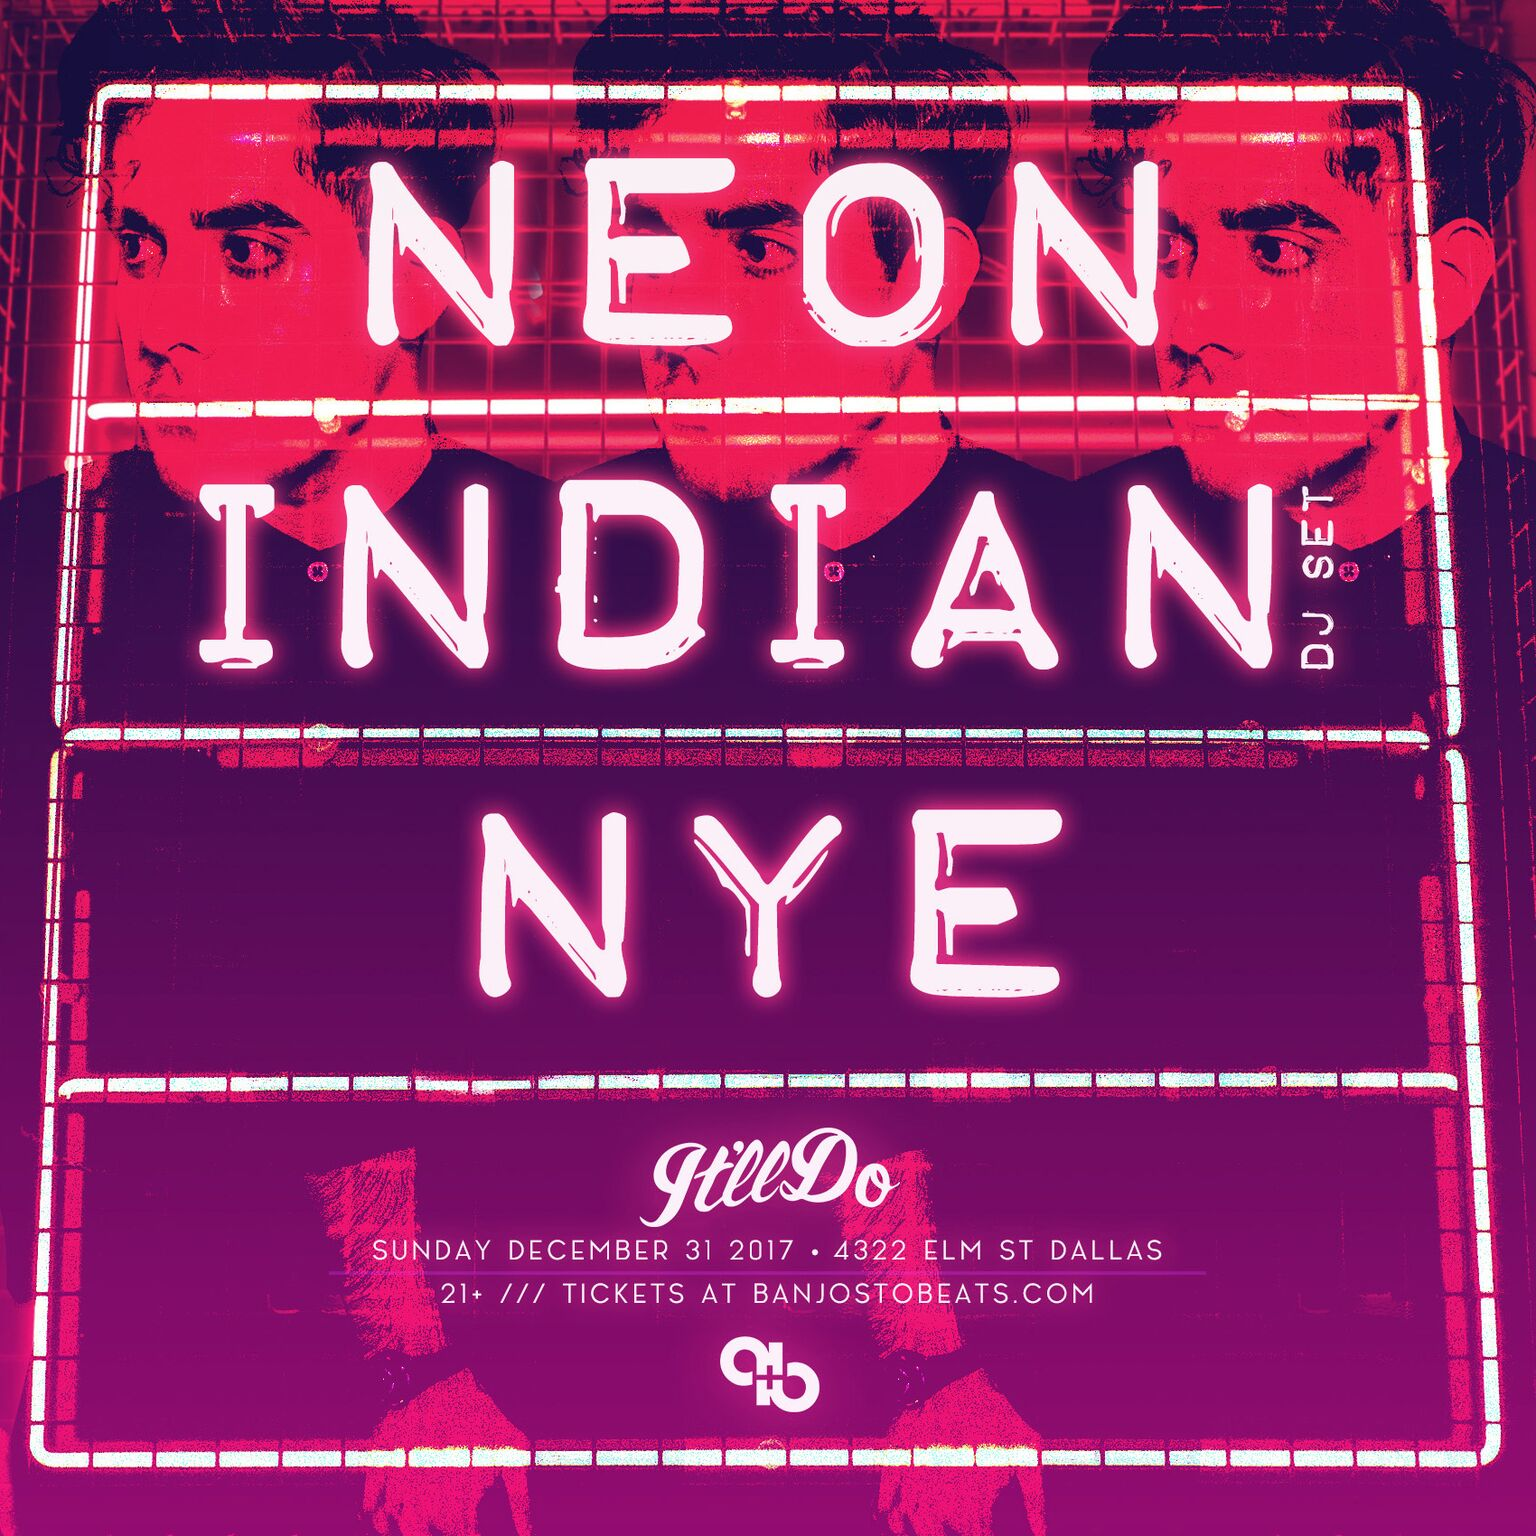 Neon Indian NYE Dallas 2017